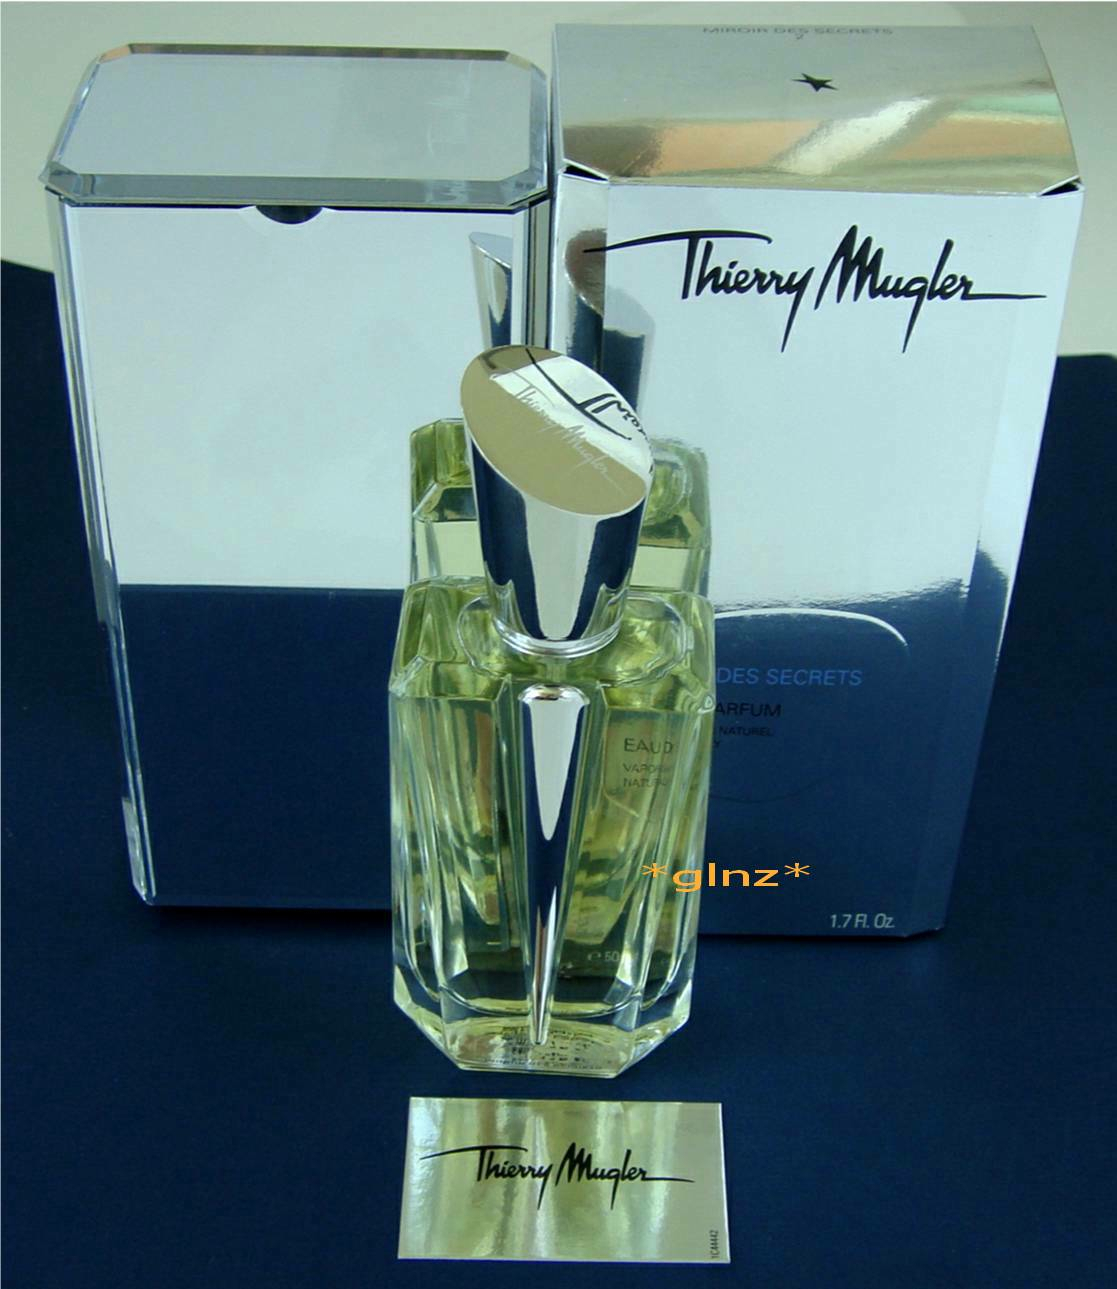 The perfume paradox worldofbeautytips for Miroir des secrets thierry mugler